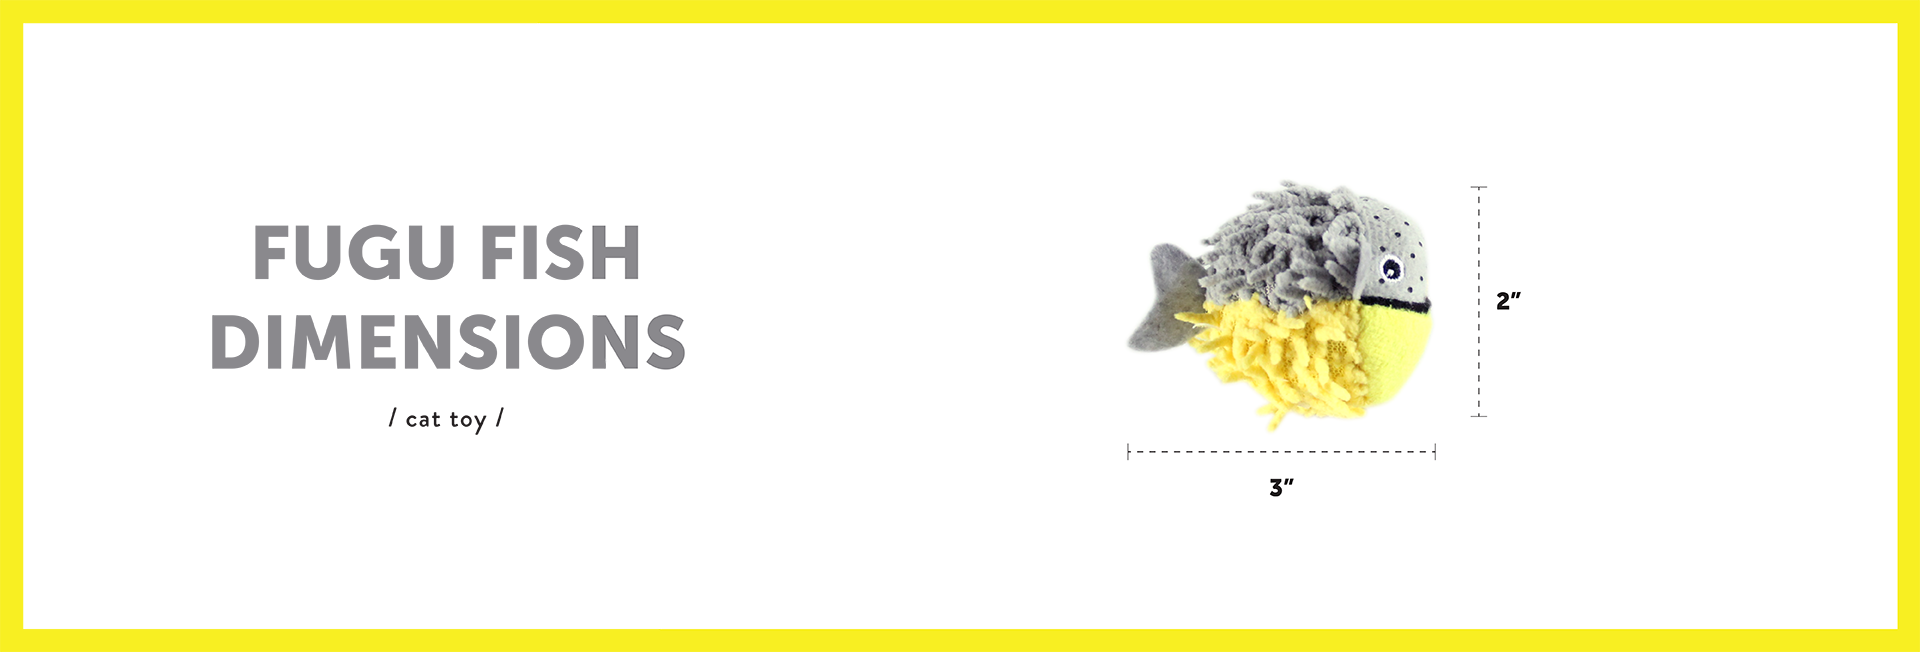 dimensions-fugu-fish-for-cats-english